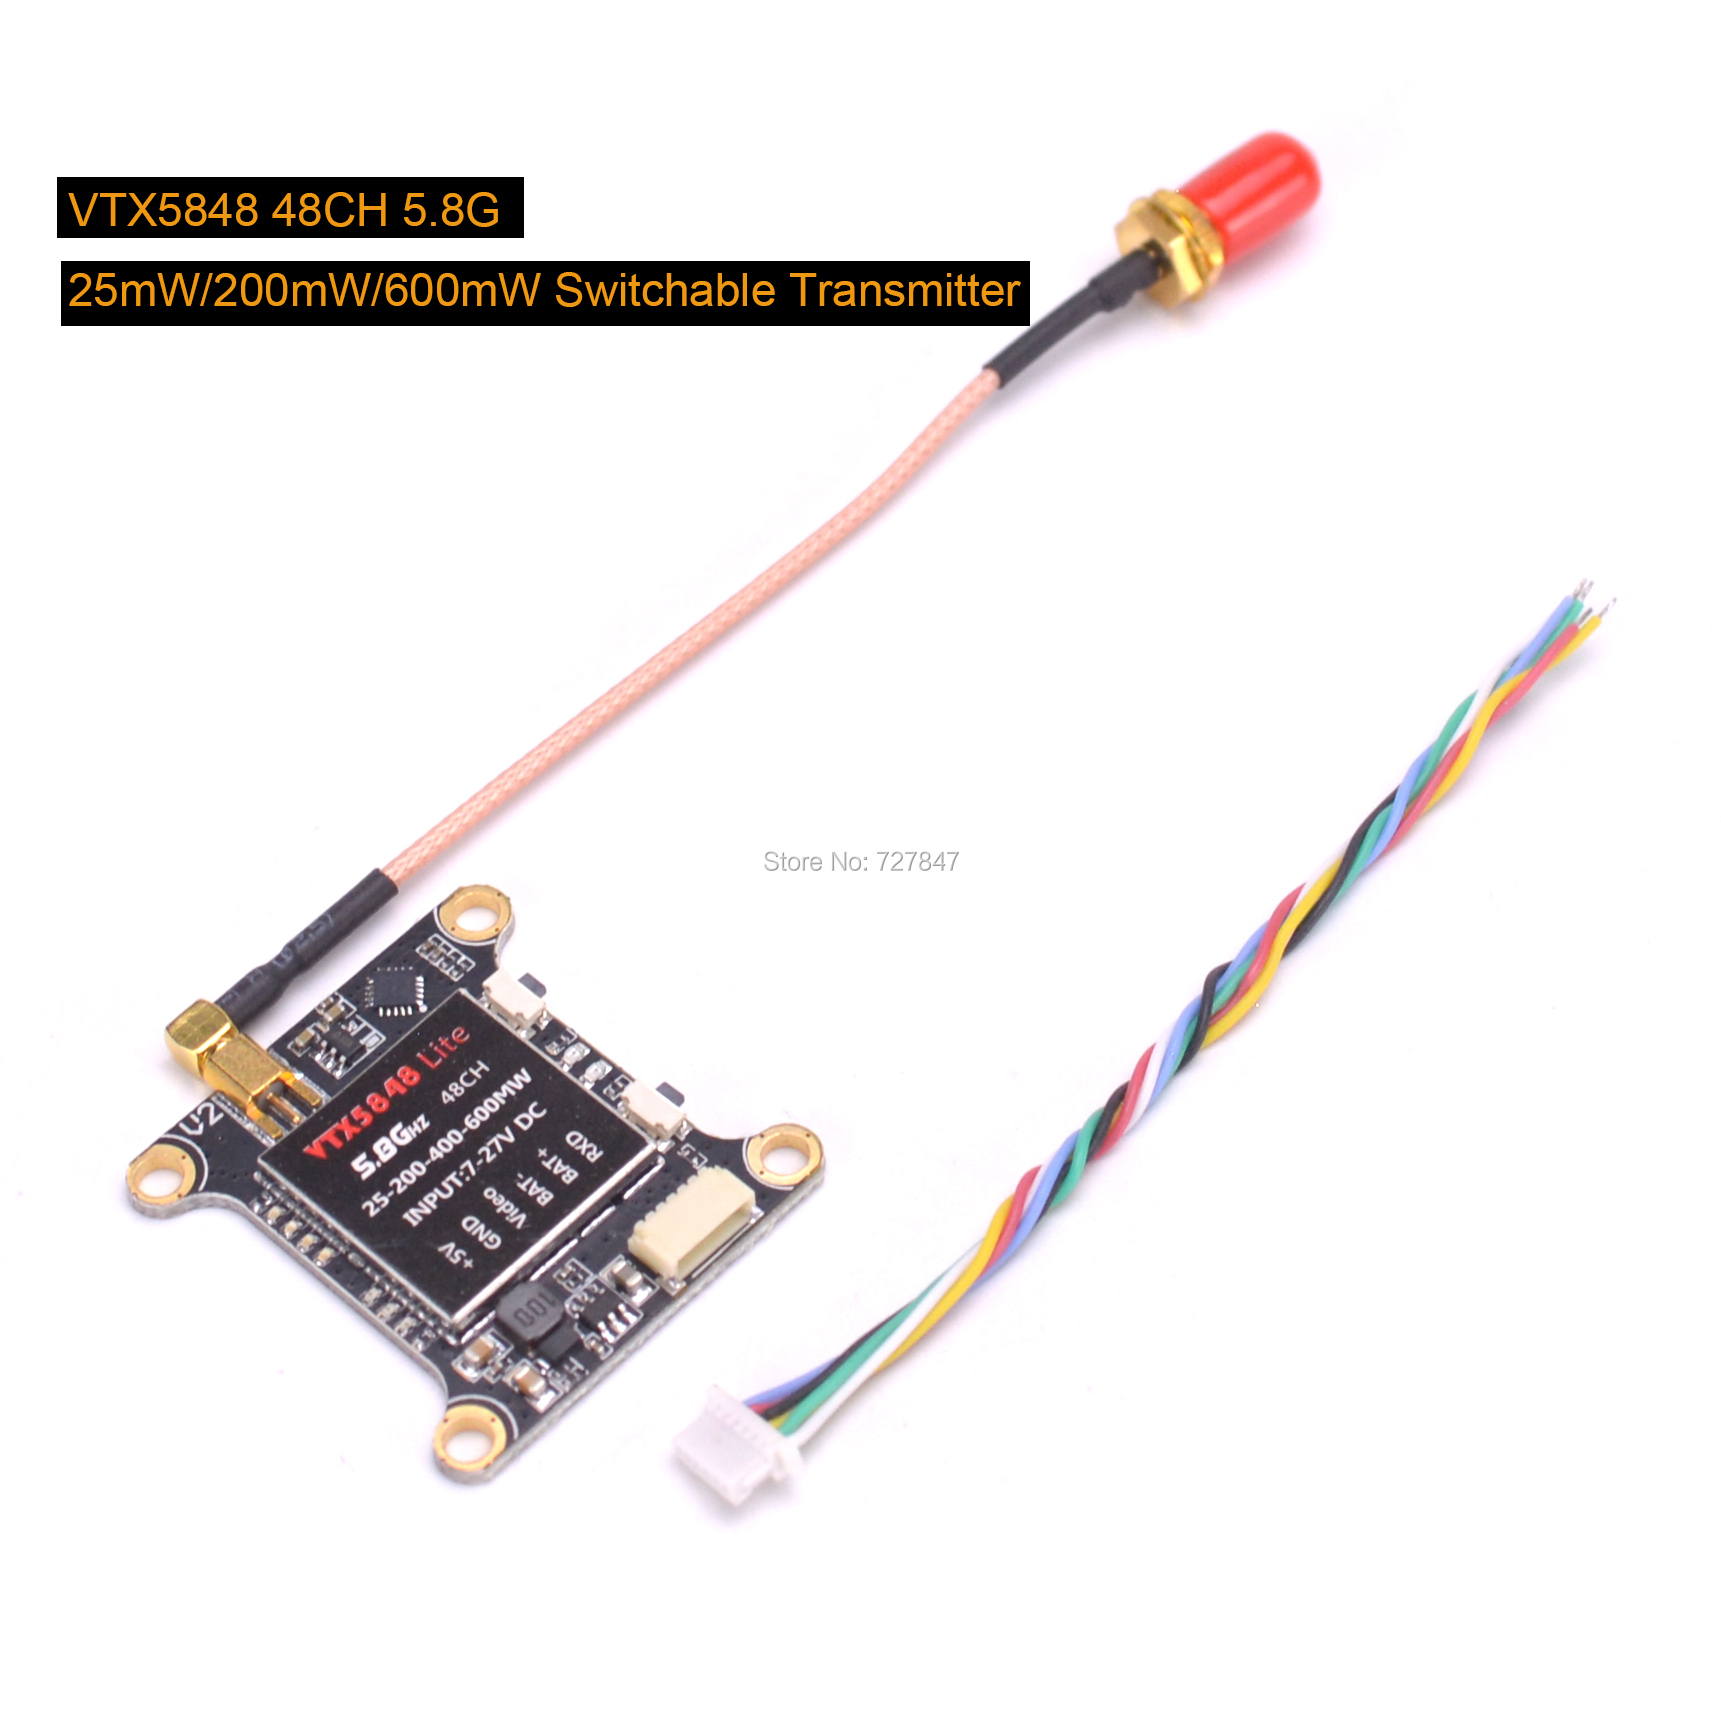 NEW VTX5848 LITE 48CH 5.8G 25/100/200/400/600mW Switchable FPV RC Drone VTX Video Transmitter Module OSD Control